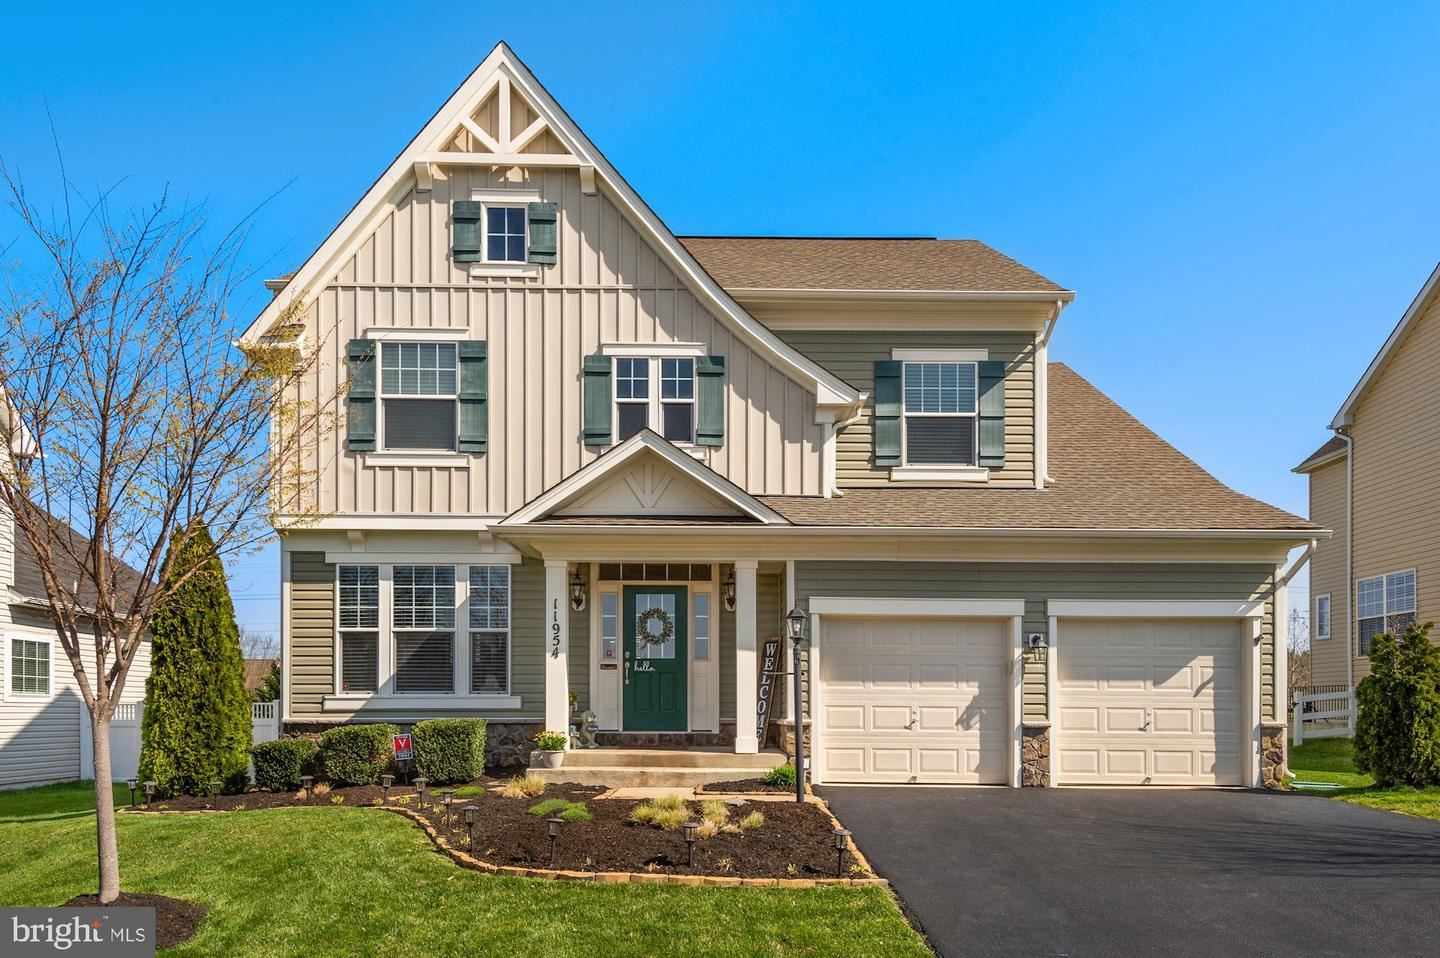 Photo for 11954 BLUE VIOLET WAY, BRISTOW, VA 20136 (MLS # VAPW519050)